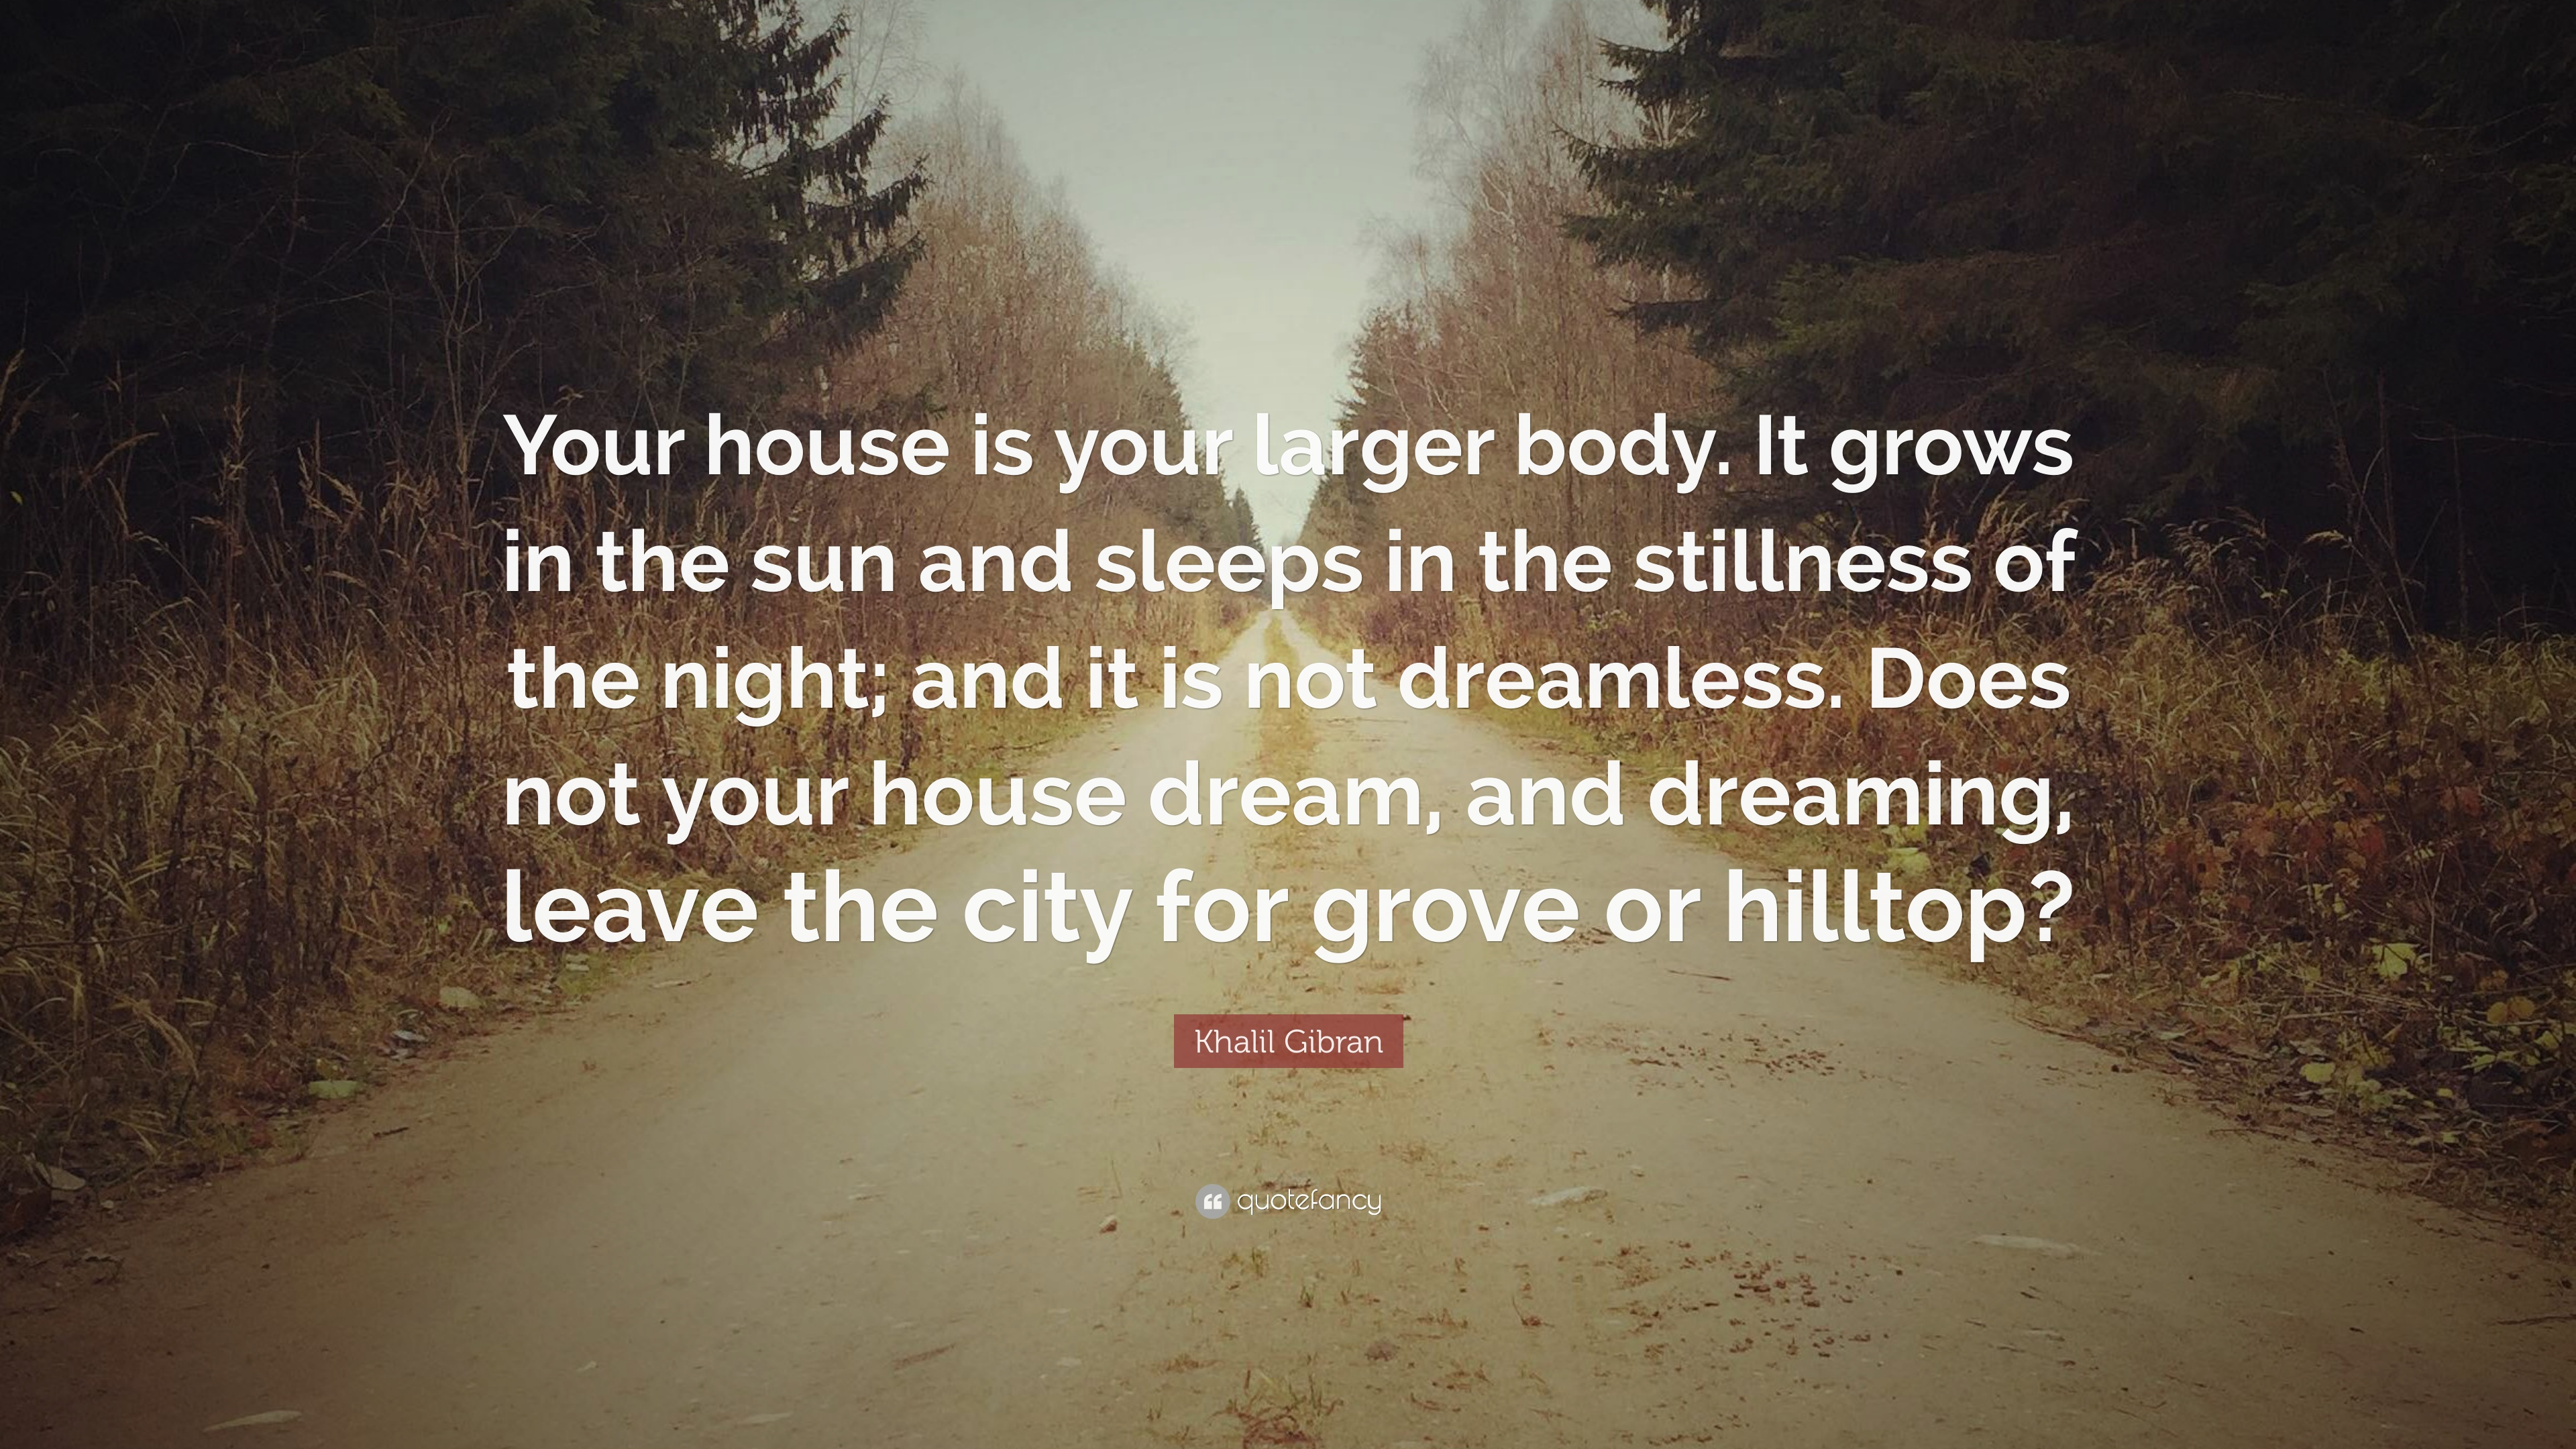 Khalil Gibran Quote Your House Is Your Larger Body It Grows In The Sun And Sleeps In The Stillness Of The Night And It Is Not Dreamless D 10 Wallpapers Quotefancy